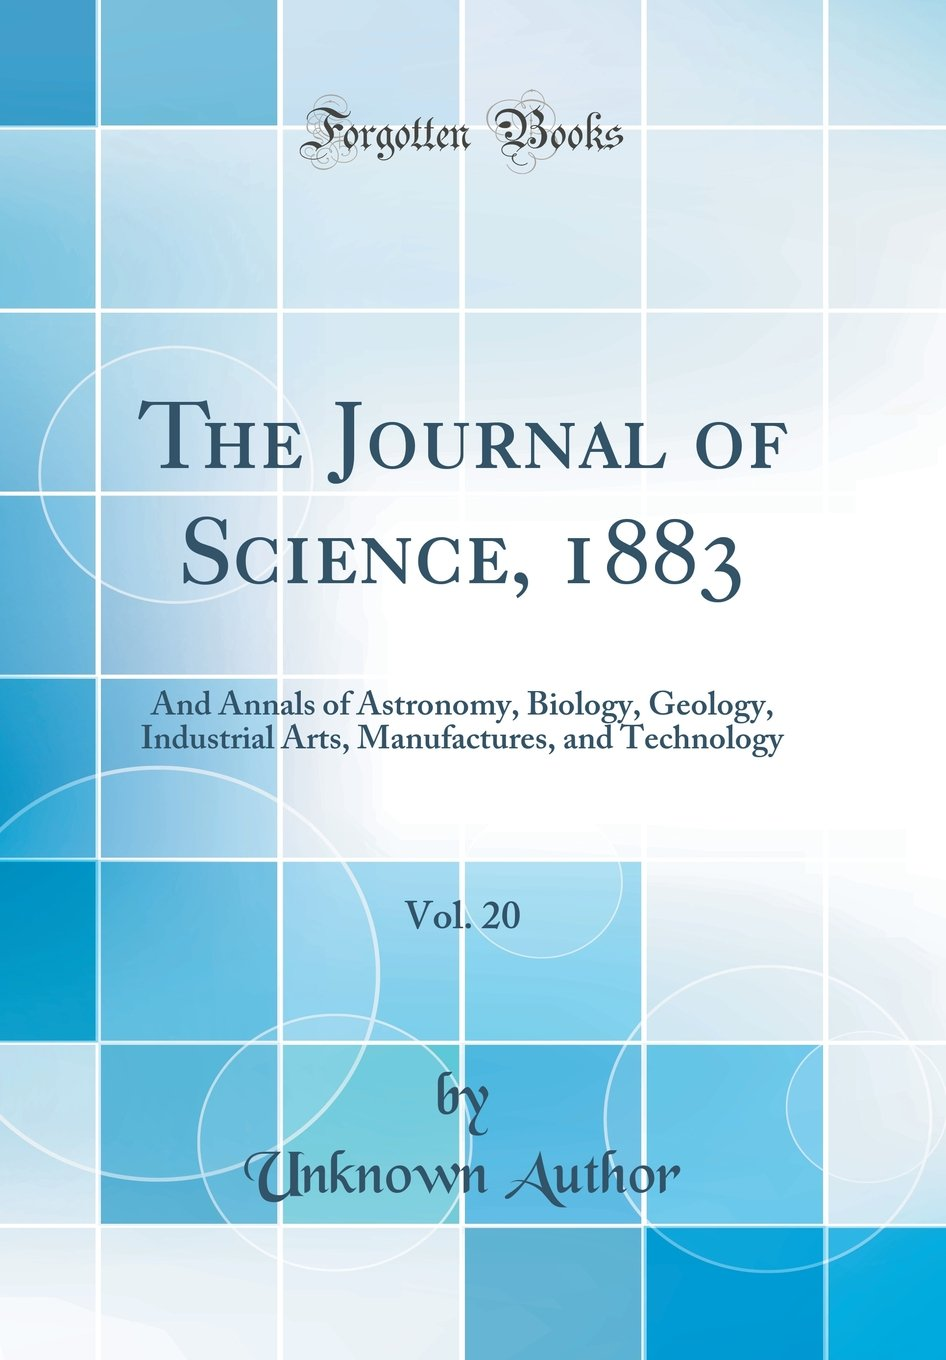 Download The Journal of Science, 1883, Vol. 20: And Annals of Astronomy, Biology, Geology, Industrial Arts, Manufactures, and Technology (Classic Reprint) pdf